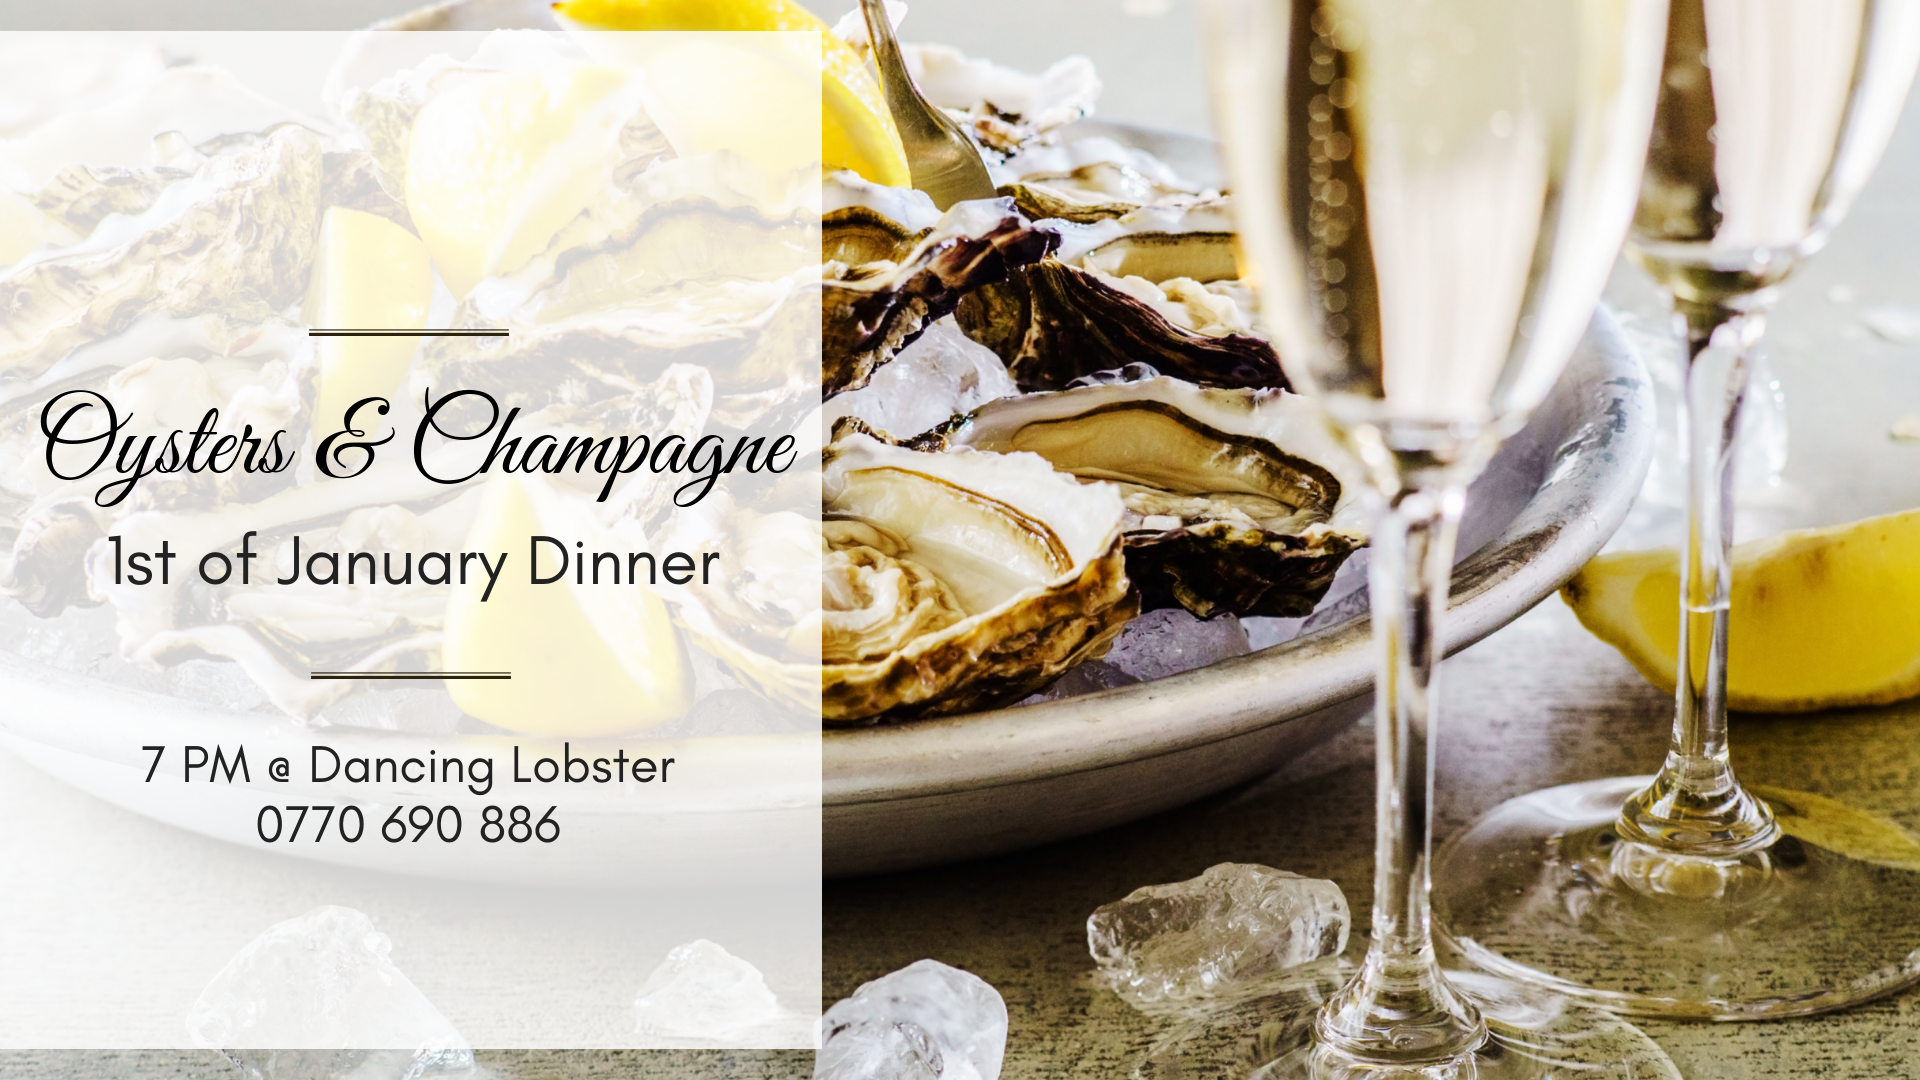 Oysters & Champagne * 1st of January Dinner